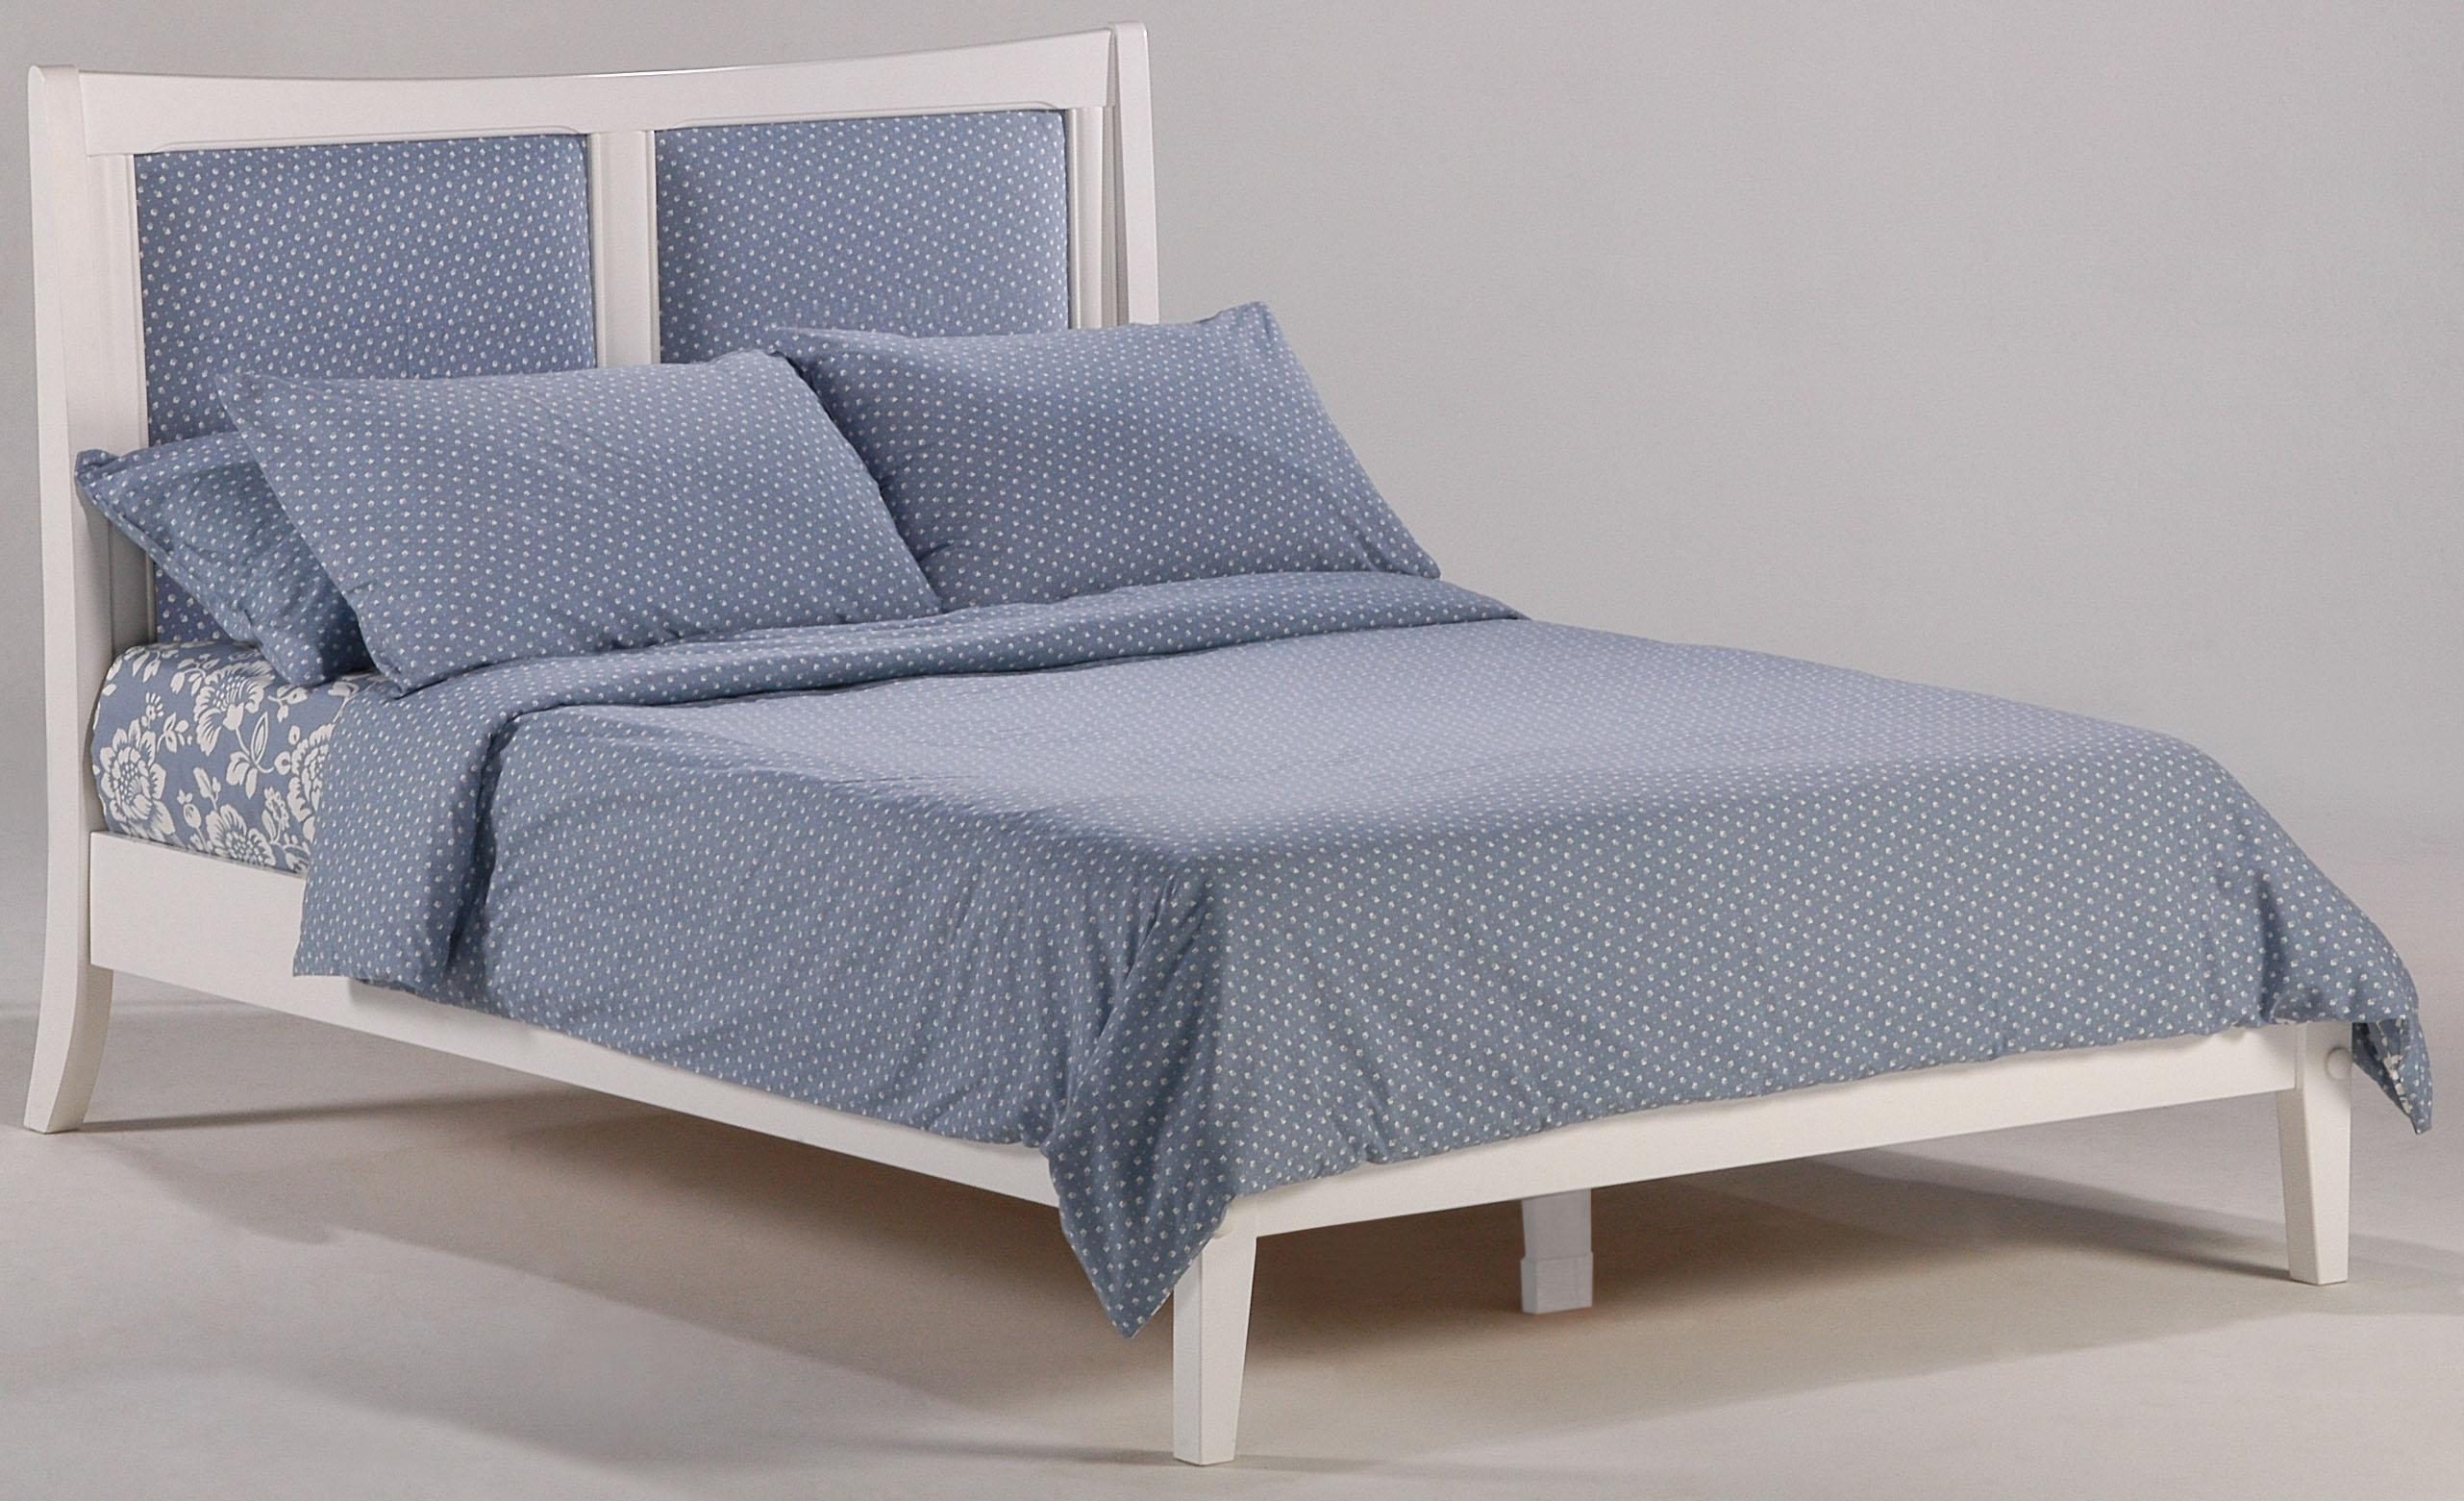 Spice Twin Bed by Night & Day Furniture at Furniture Superstore - Rochester, MN